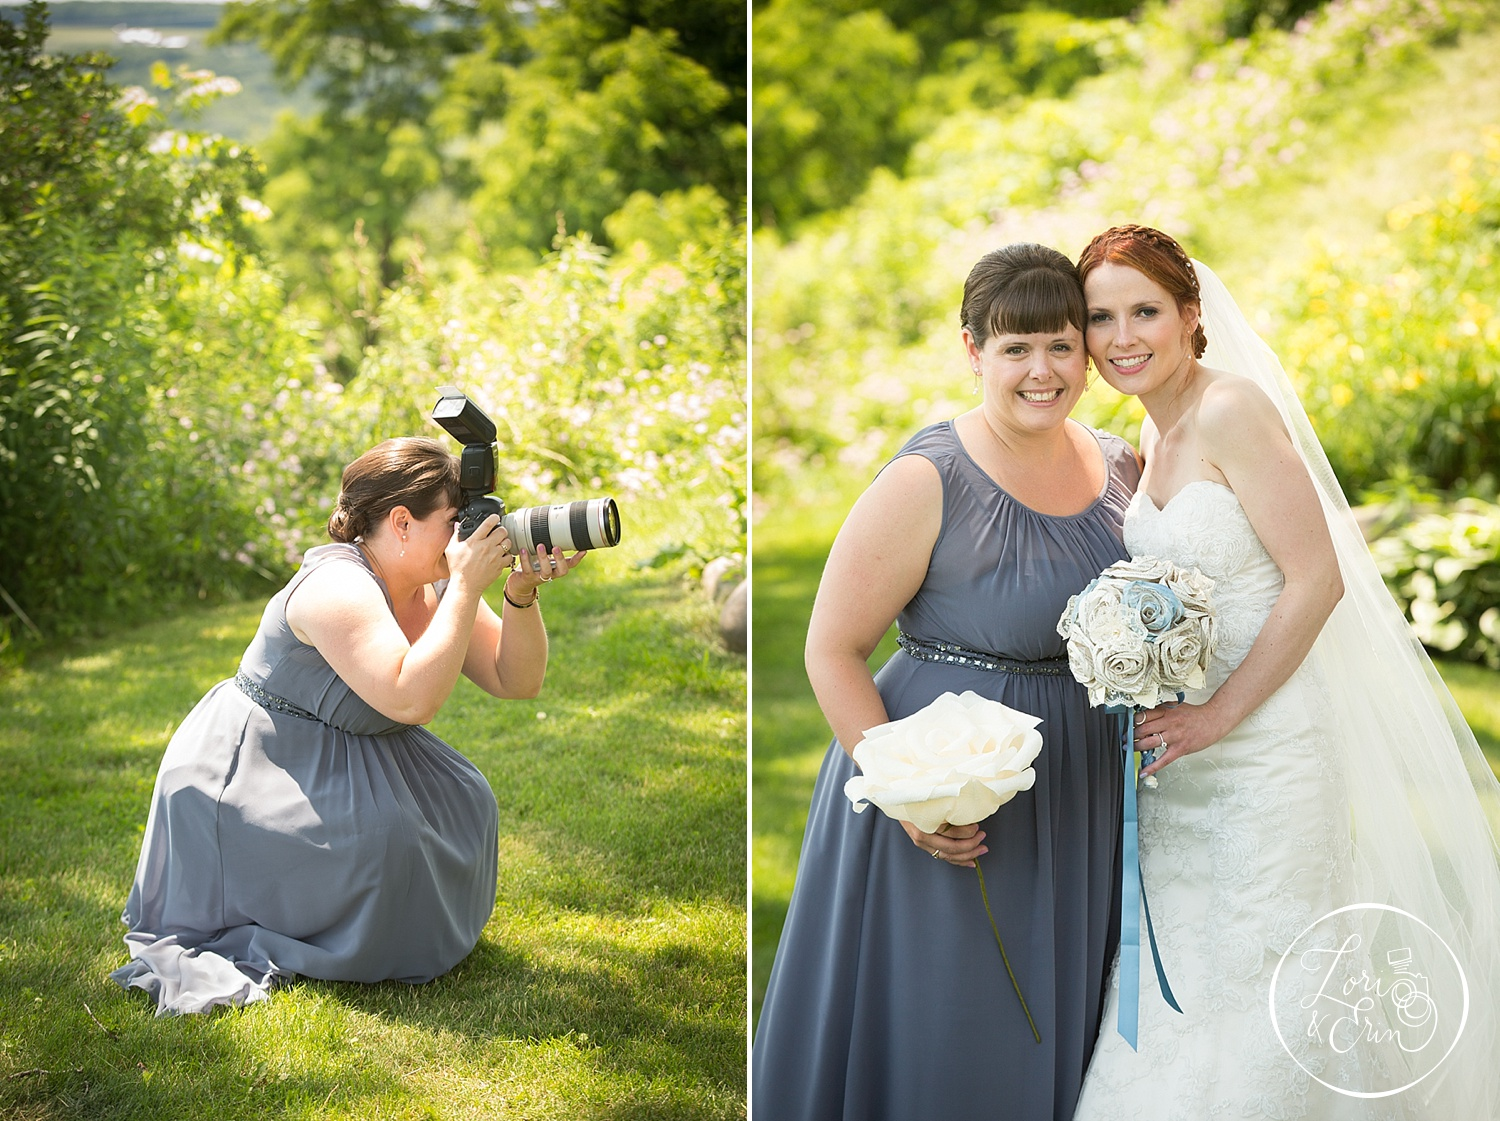 Photographer by day, Bridesmaid by... day? :)